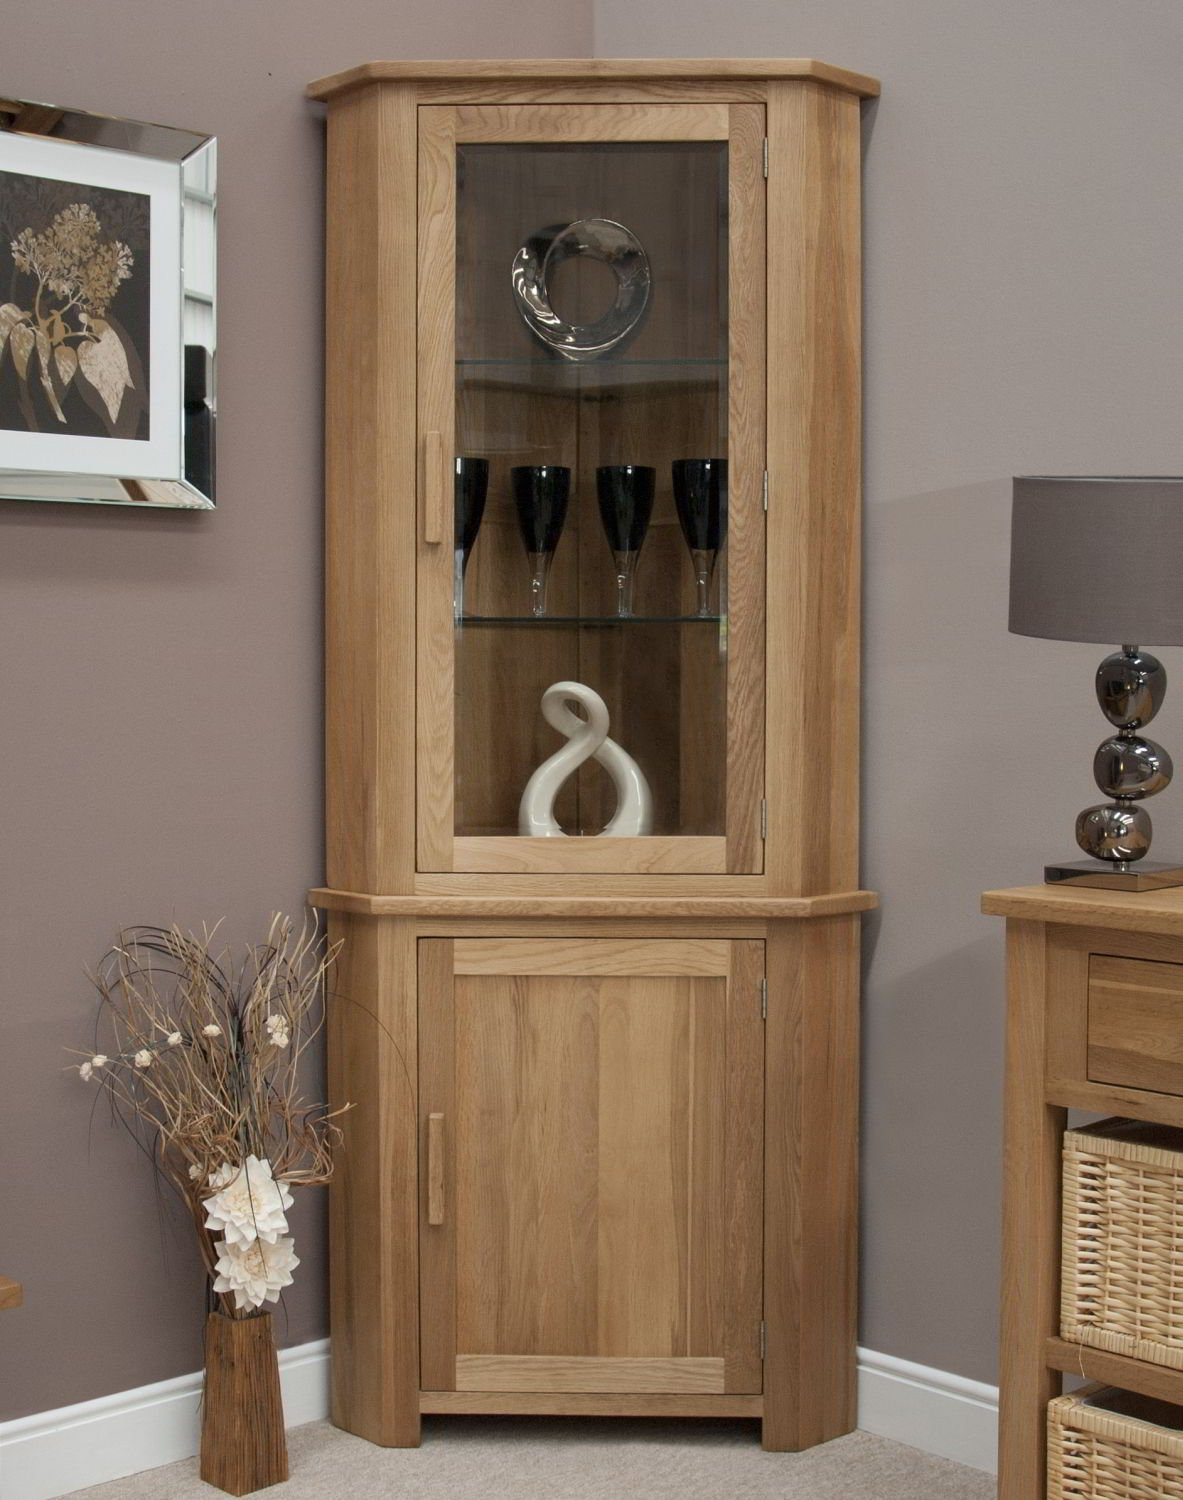 Eton Solid Oak Furniture Corner Display Cabinet Unit With Light: Amazon.co. Uk: Kitchen U0026 Home Part 53